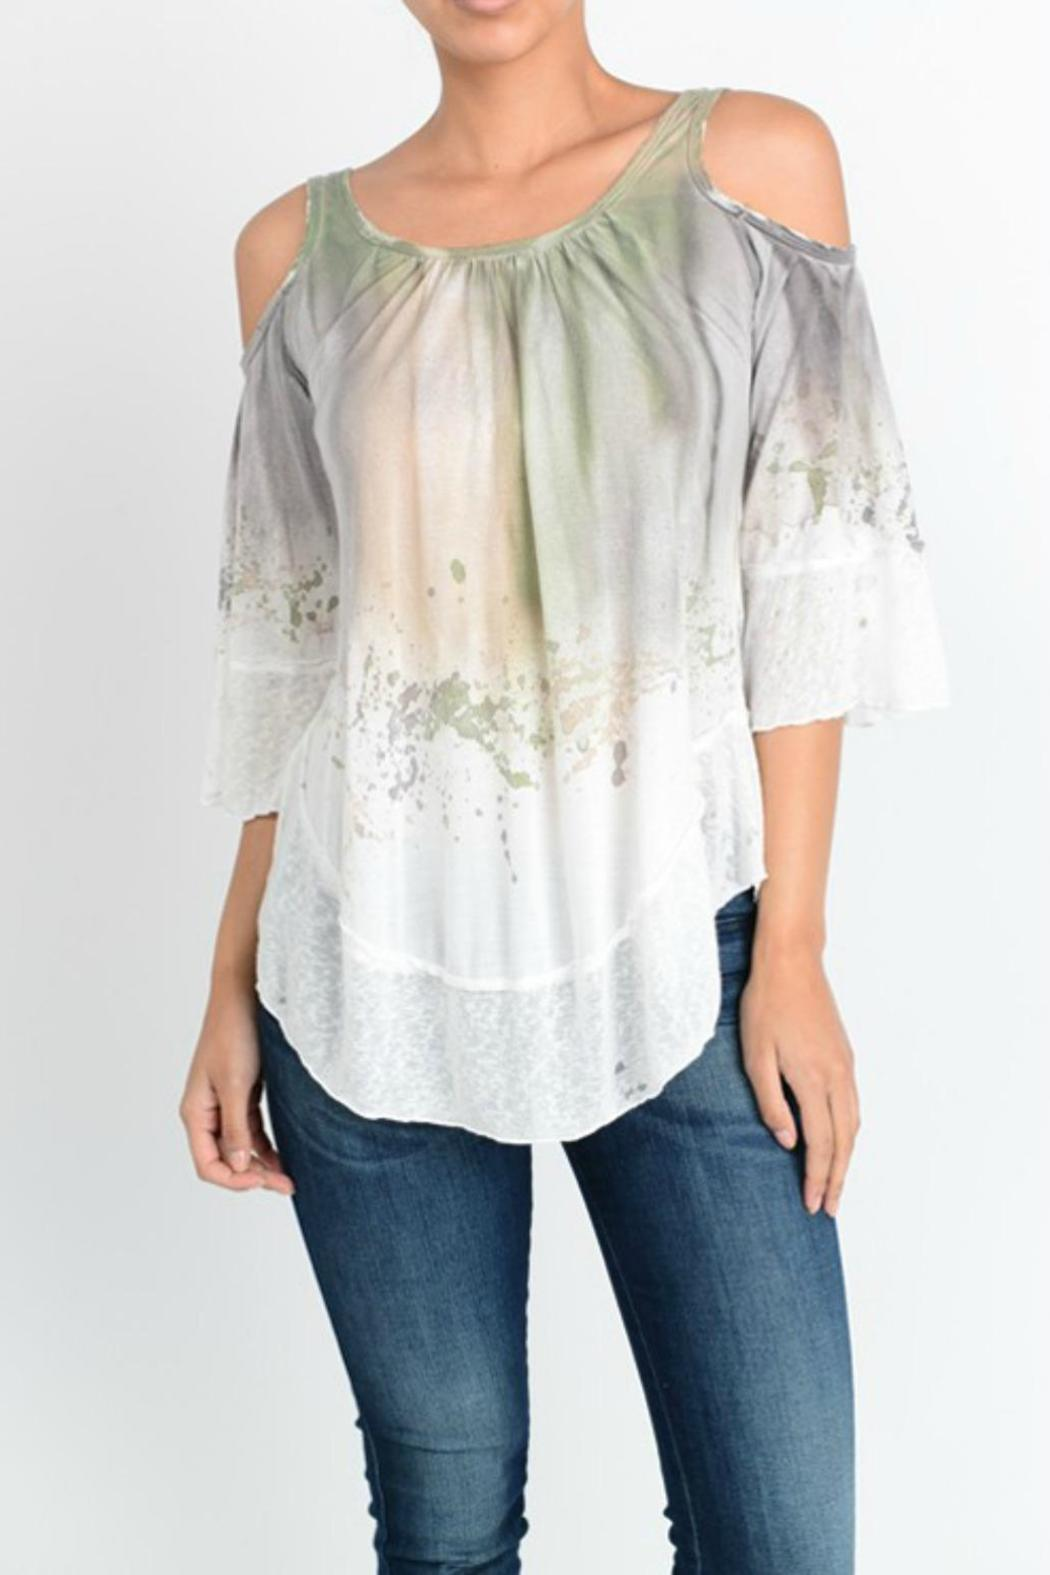 07d21107a0690 T-Party Fashion Tie Dye Top from Wyckoff by Bedford Basket — Shoptiques